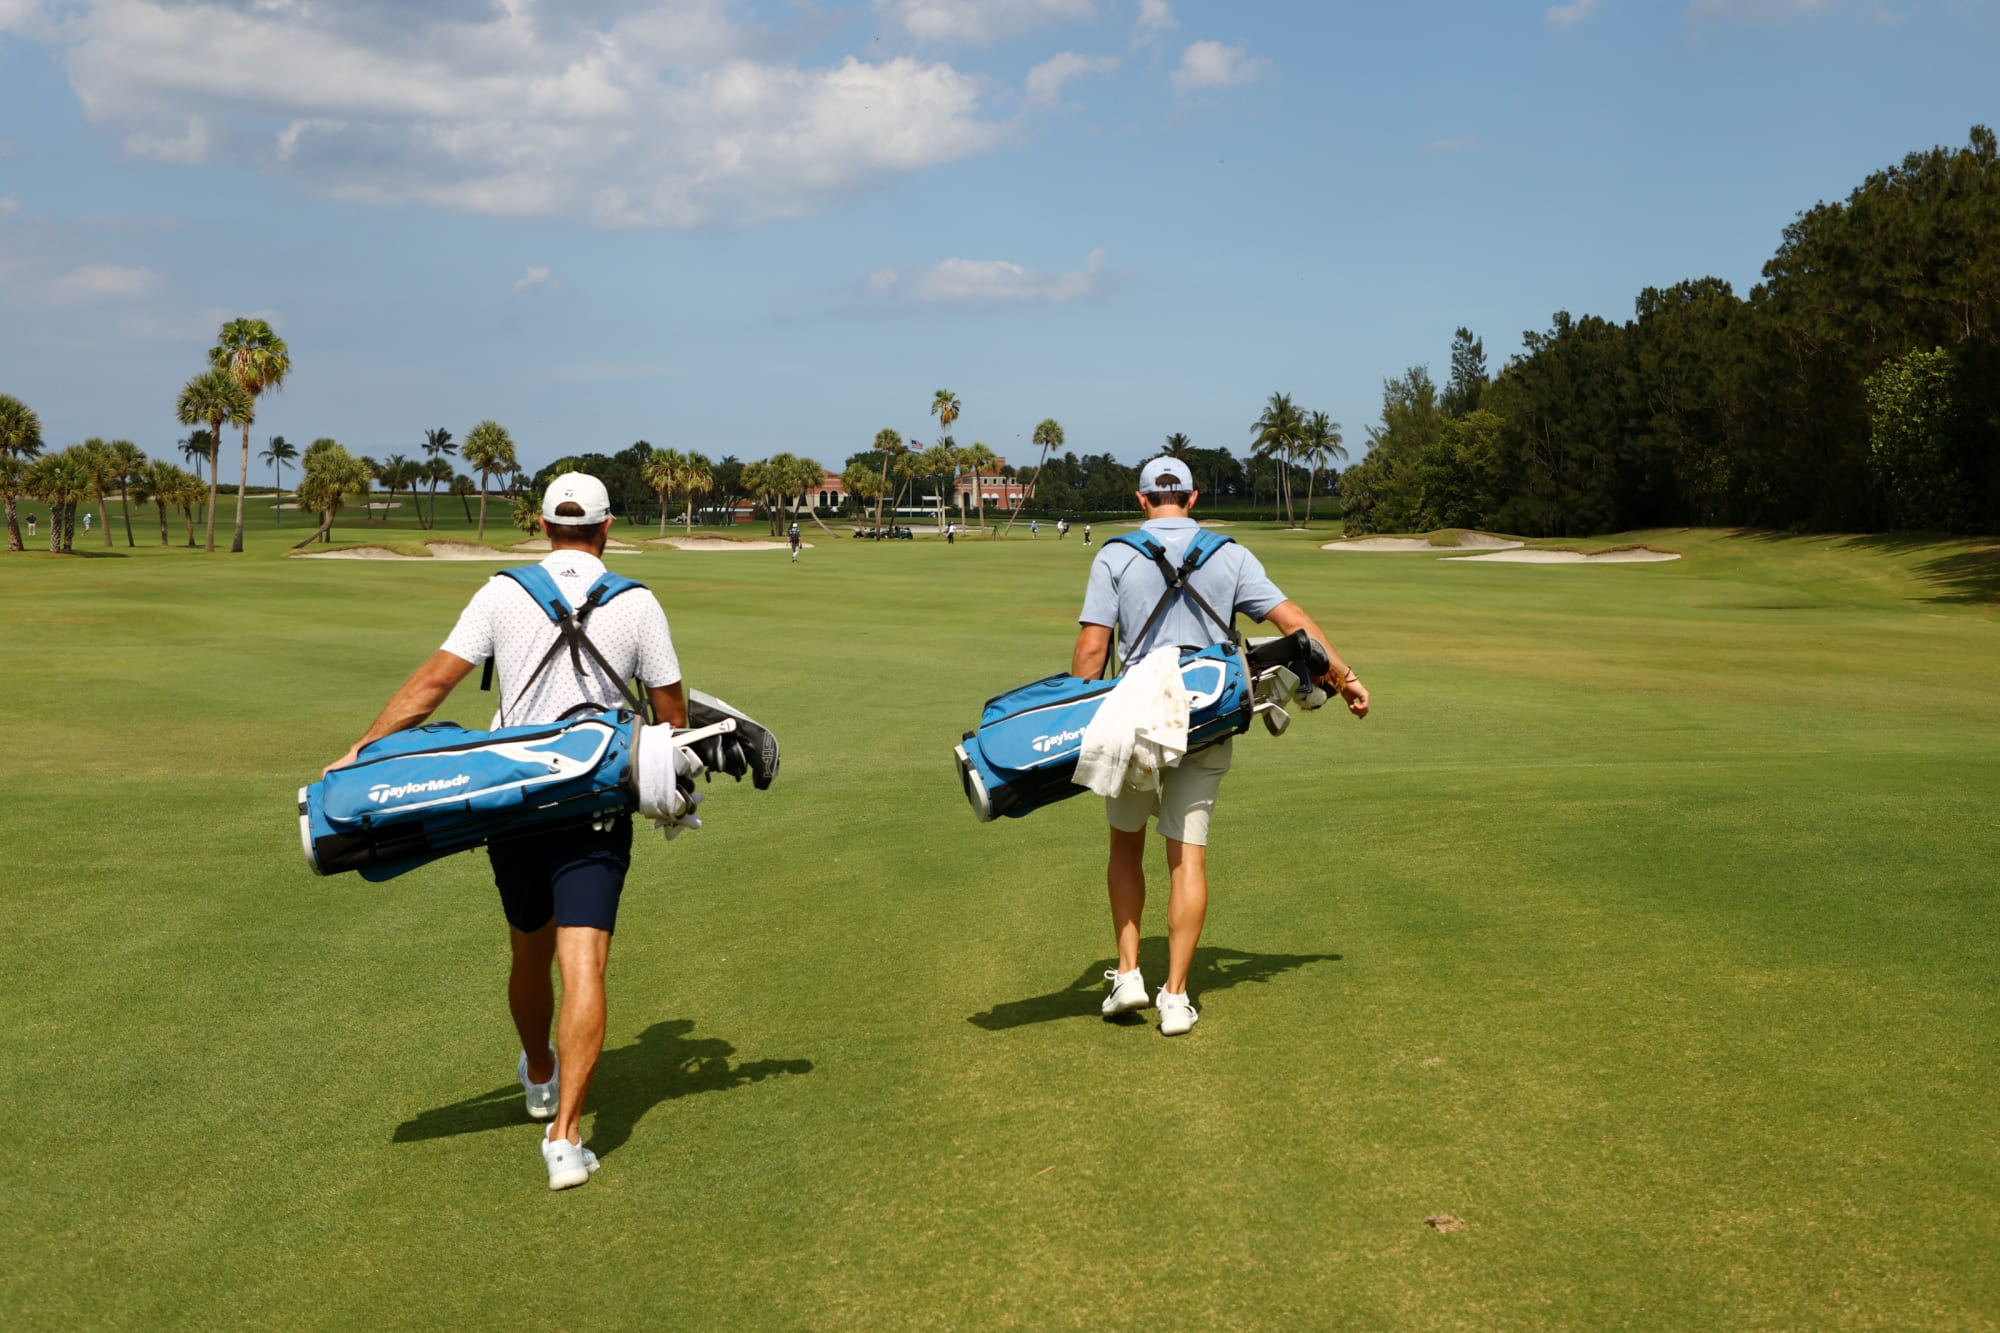 The Match will show off what golf's 'new normal' looks like